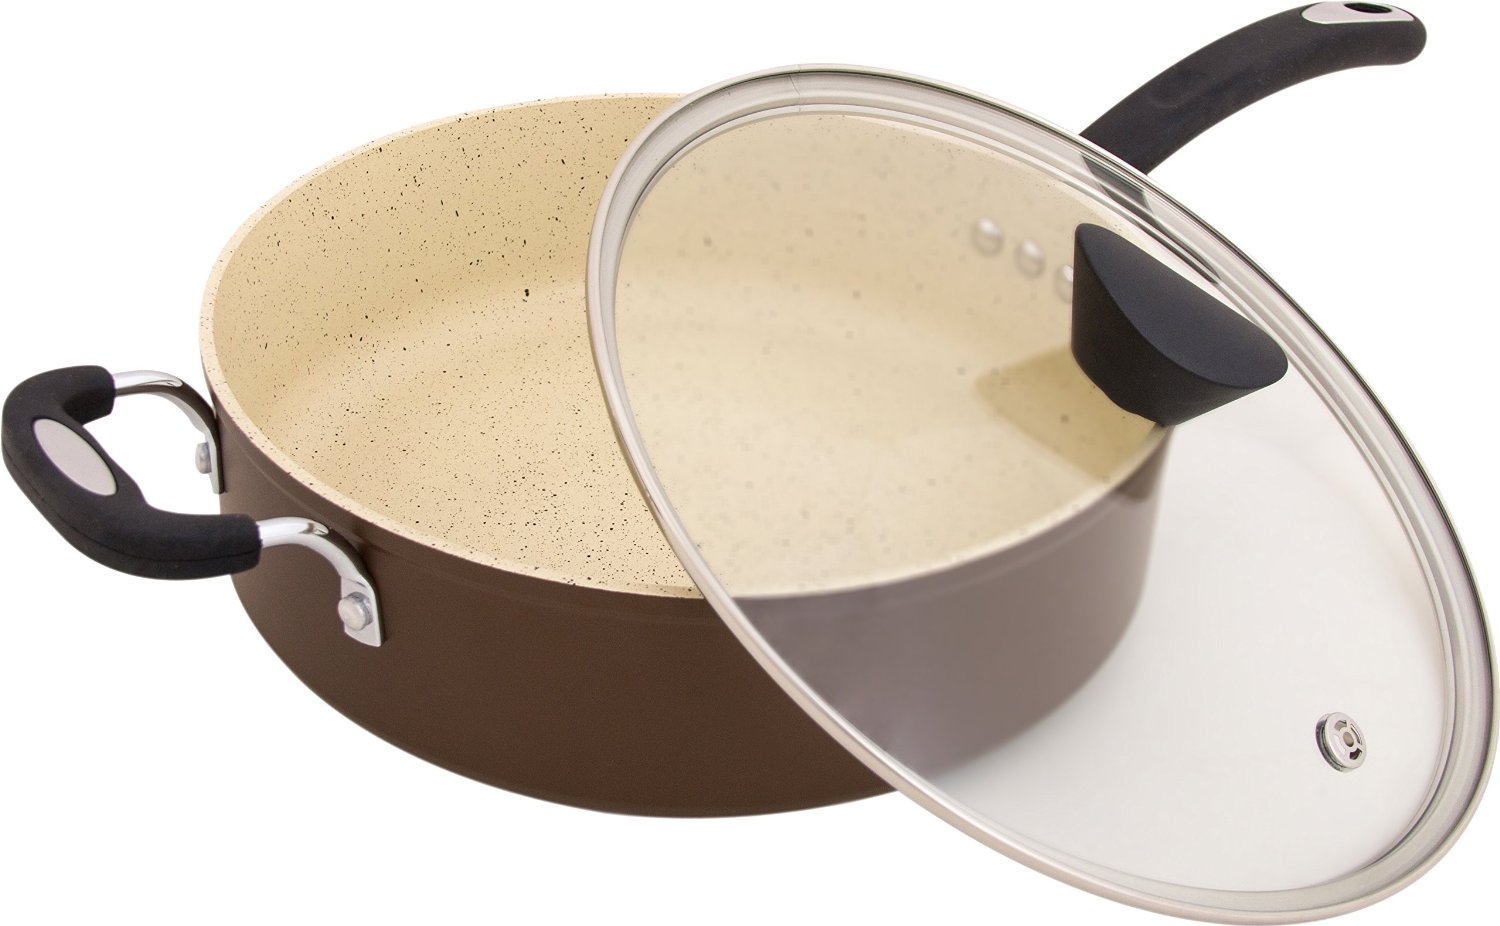 The Stone Earth All-In-One Sauce Pan by Ozeri with 100% APEO & PFOA-Free Stone-Derived Non-Stick Coating from Germany